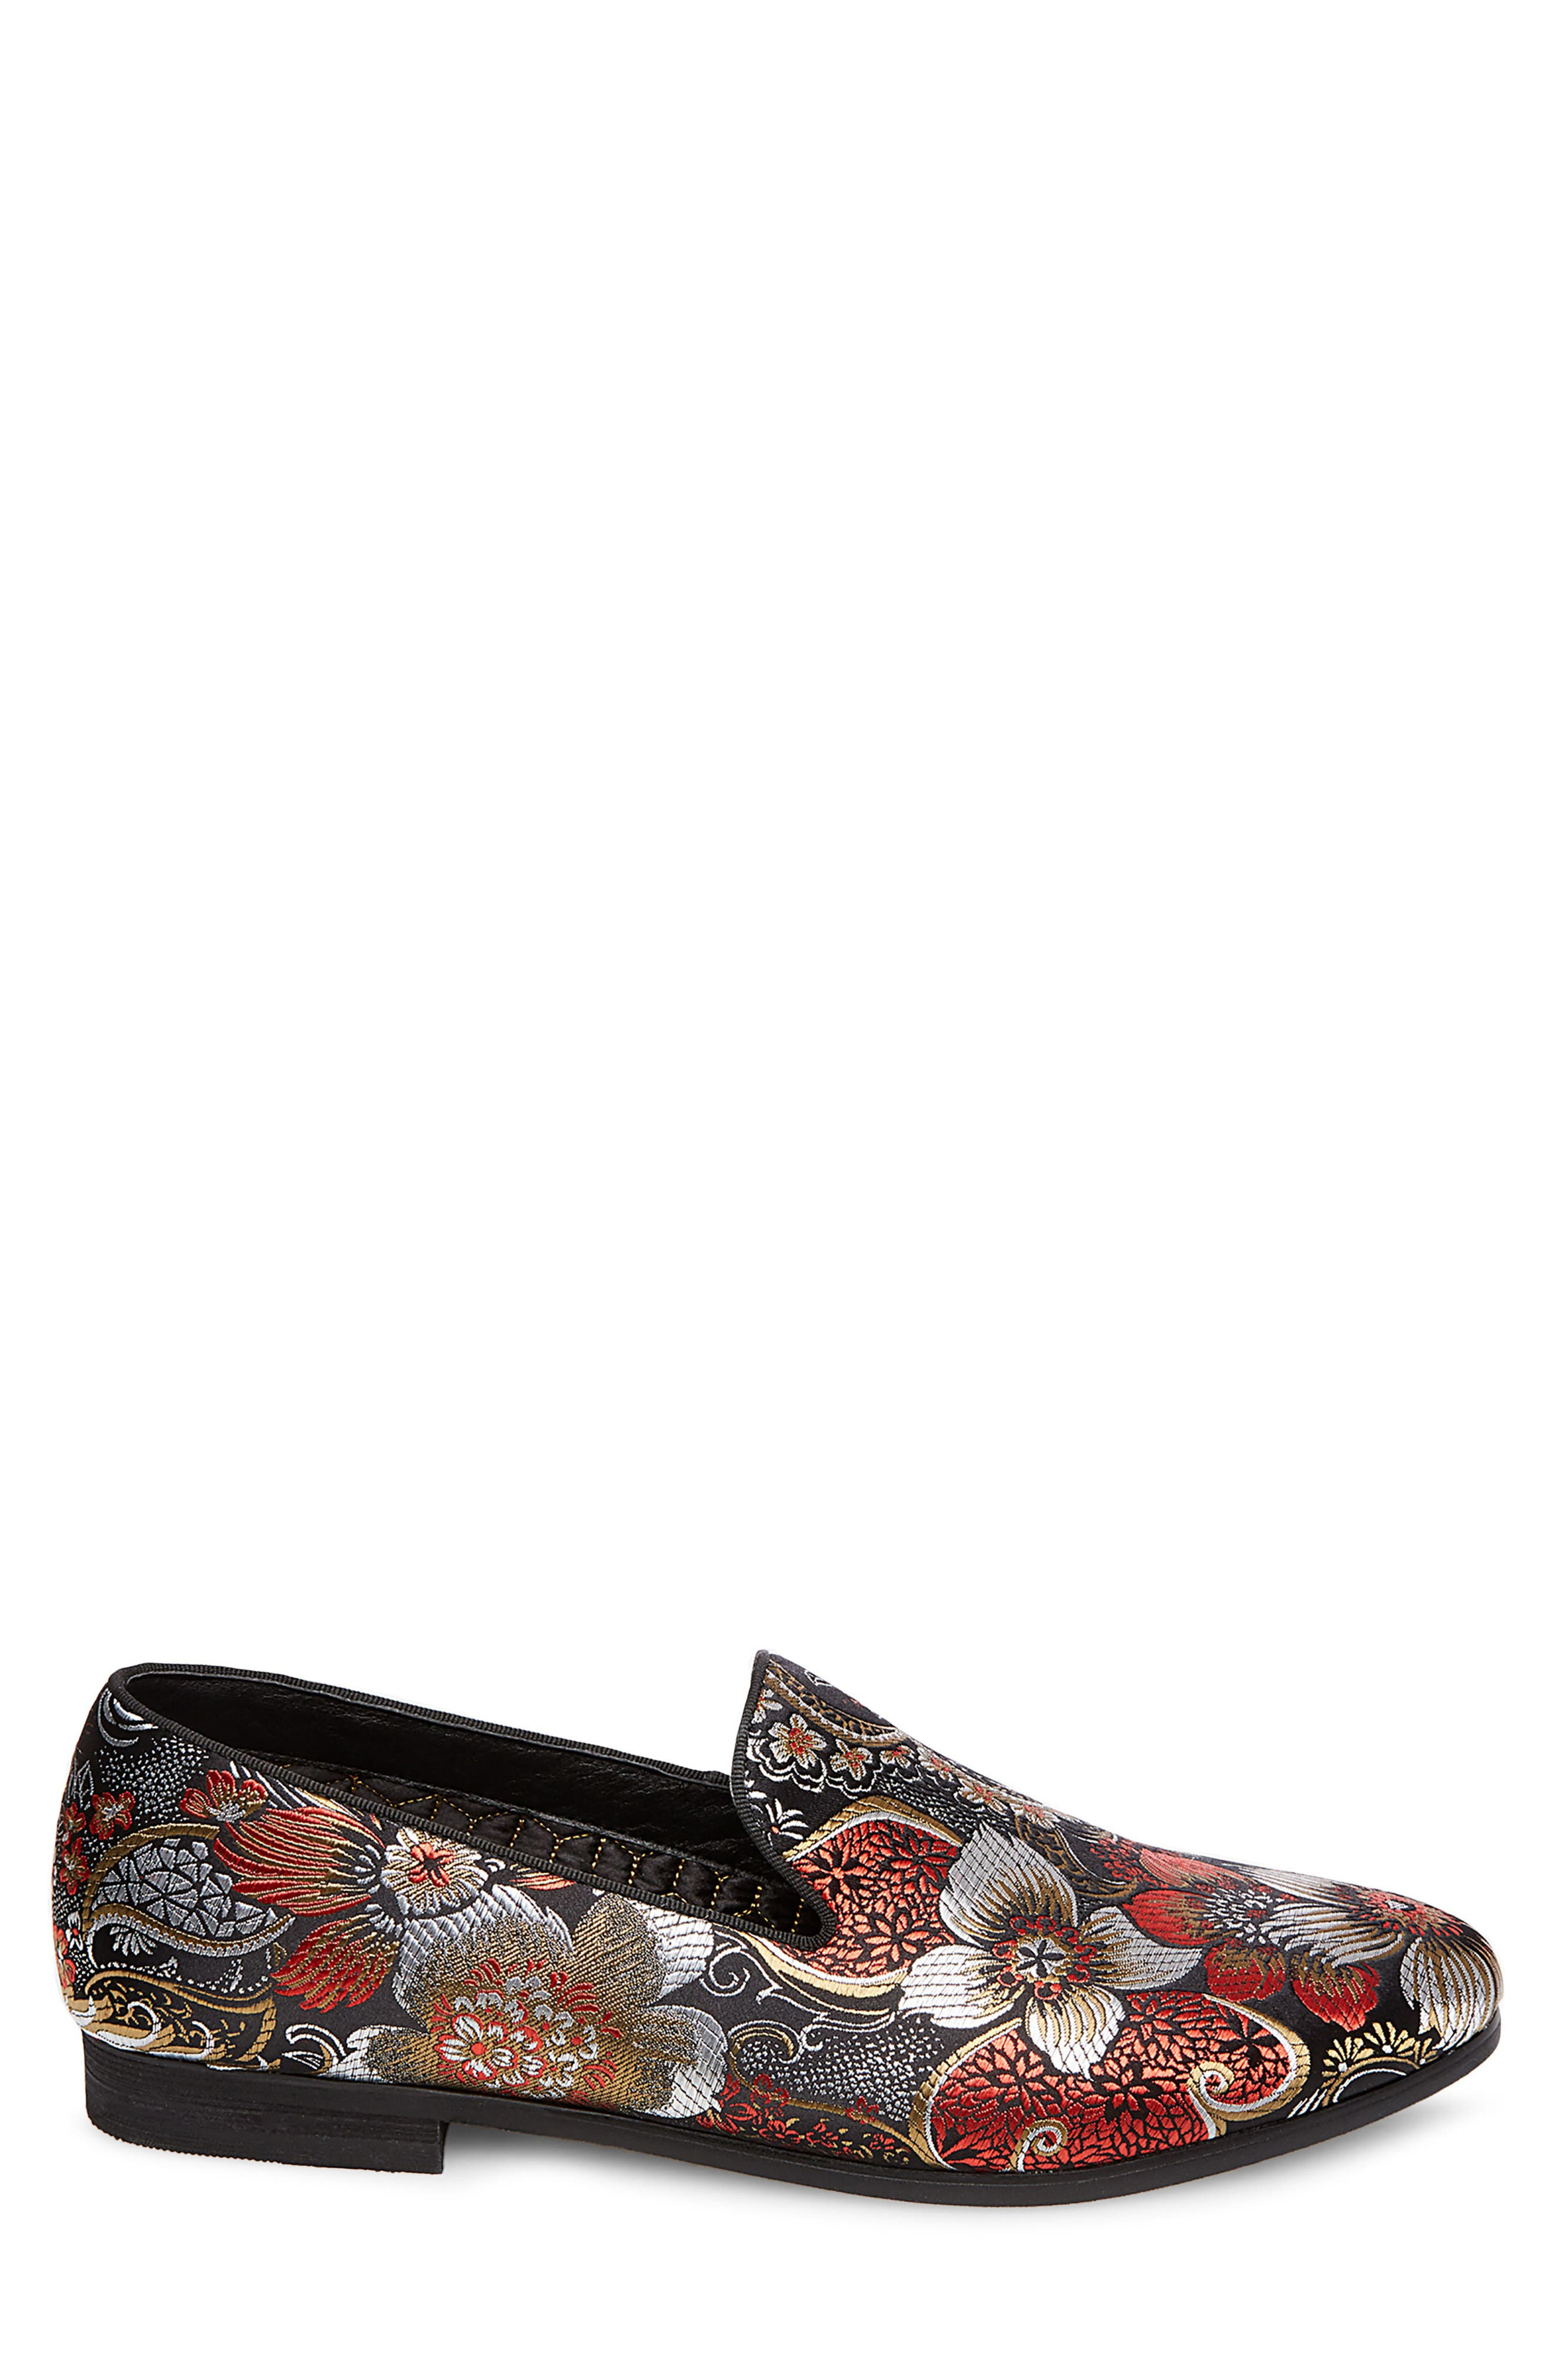 Cypress Venetian Loafer,                             Alternate thumbnail 3, color,                             Red Multi